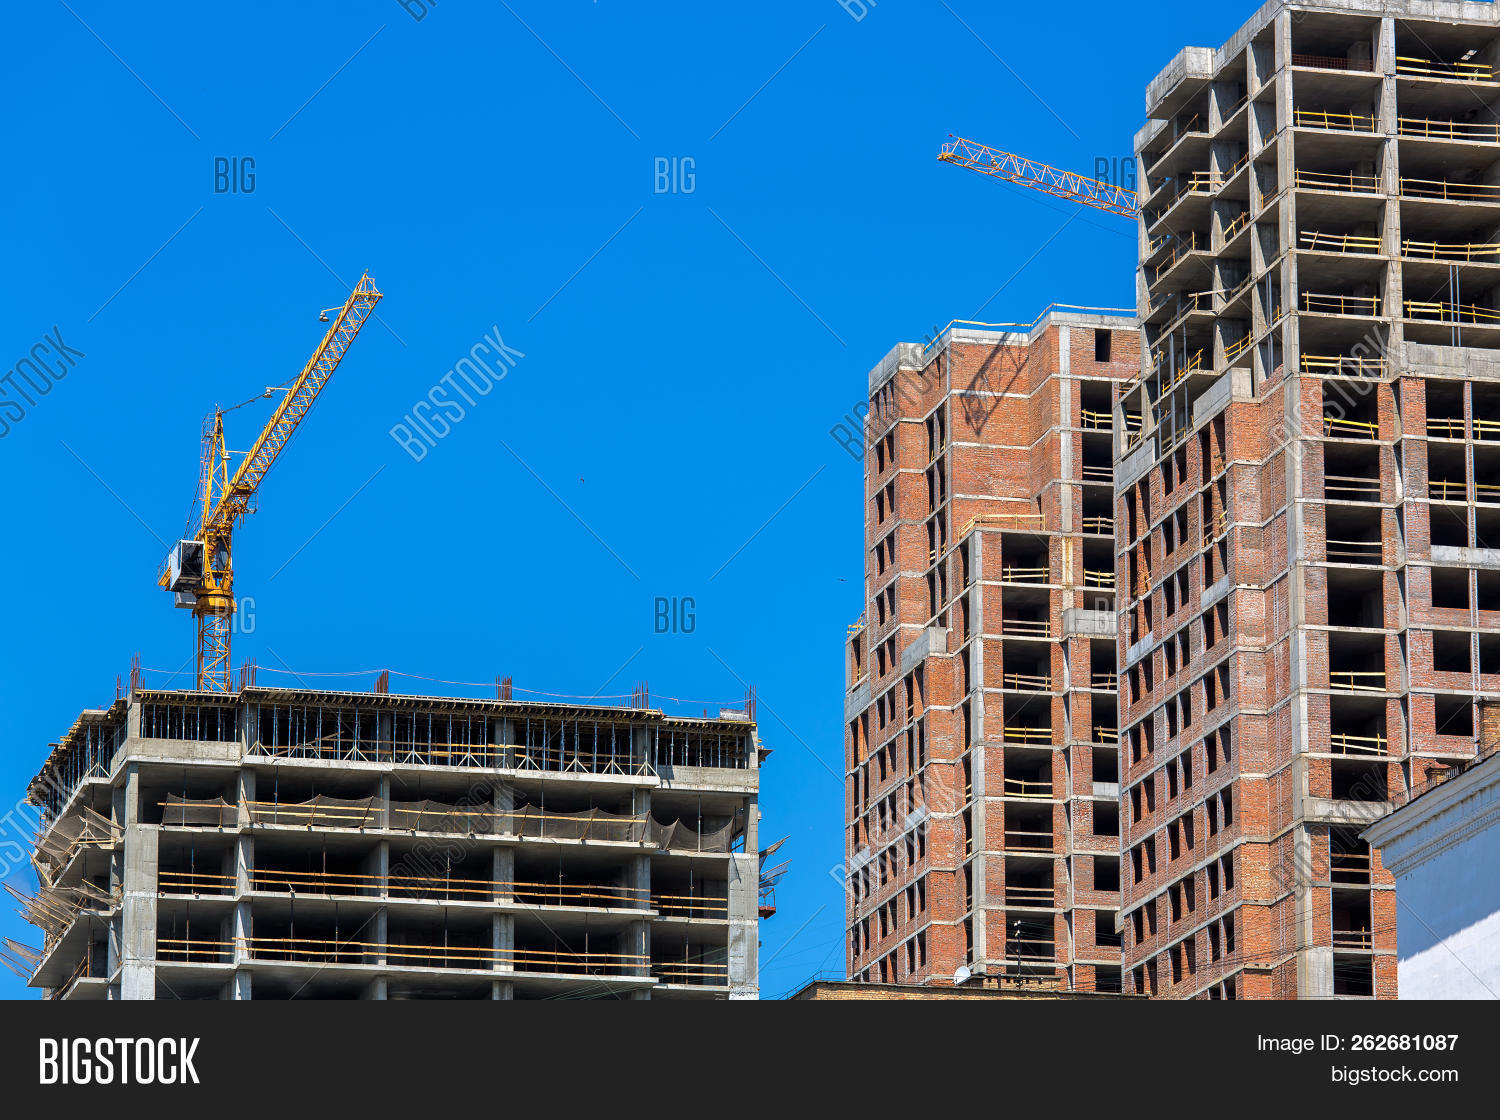 apartment,architecture,arrow,below,blue,brick,bricklaying,building,built,business,cement,concrete,construction,crane,development,engineering,equipment,estate,facade,high,high-rise,home,house,monolith,multistory,multystoried,nobody,property,real,red,residential,site,sky,skyscraper,structure,timbering,urban,work,workplace